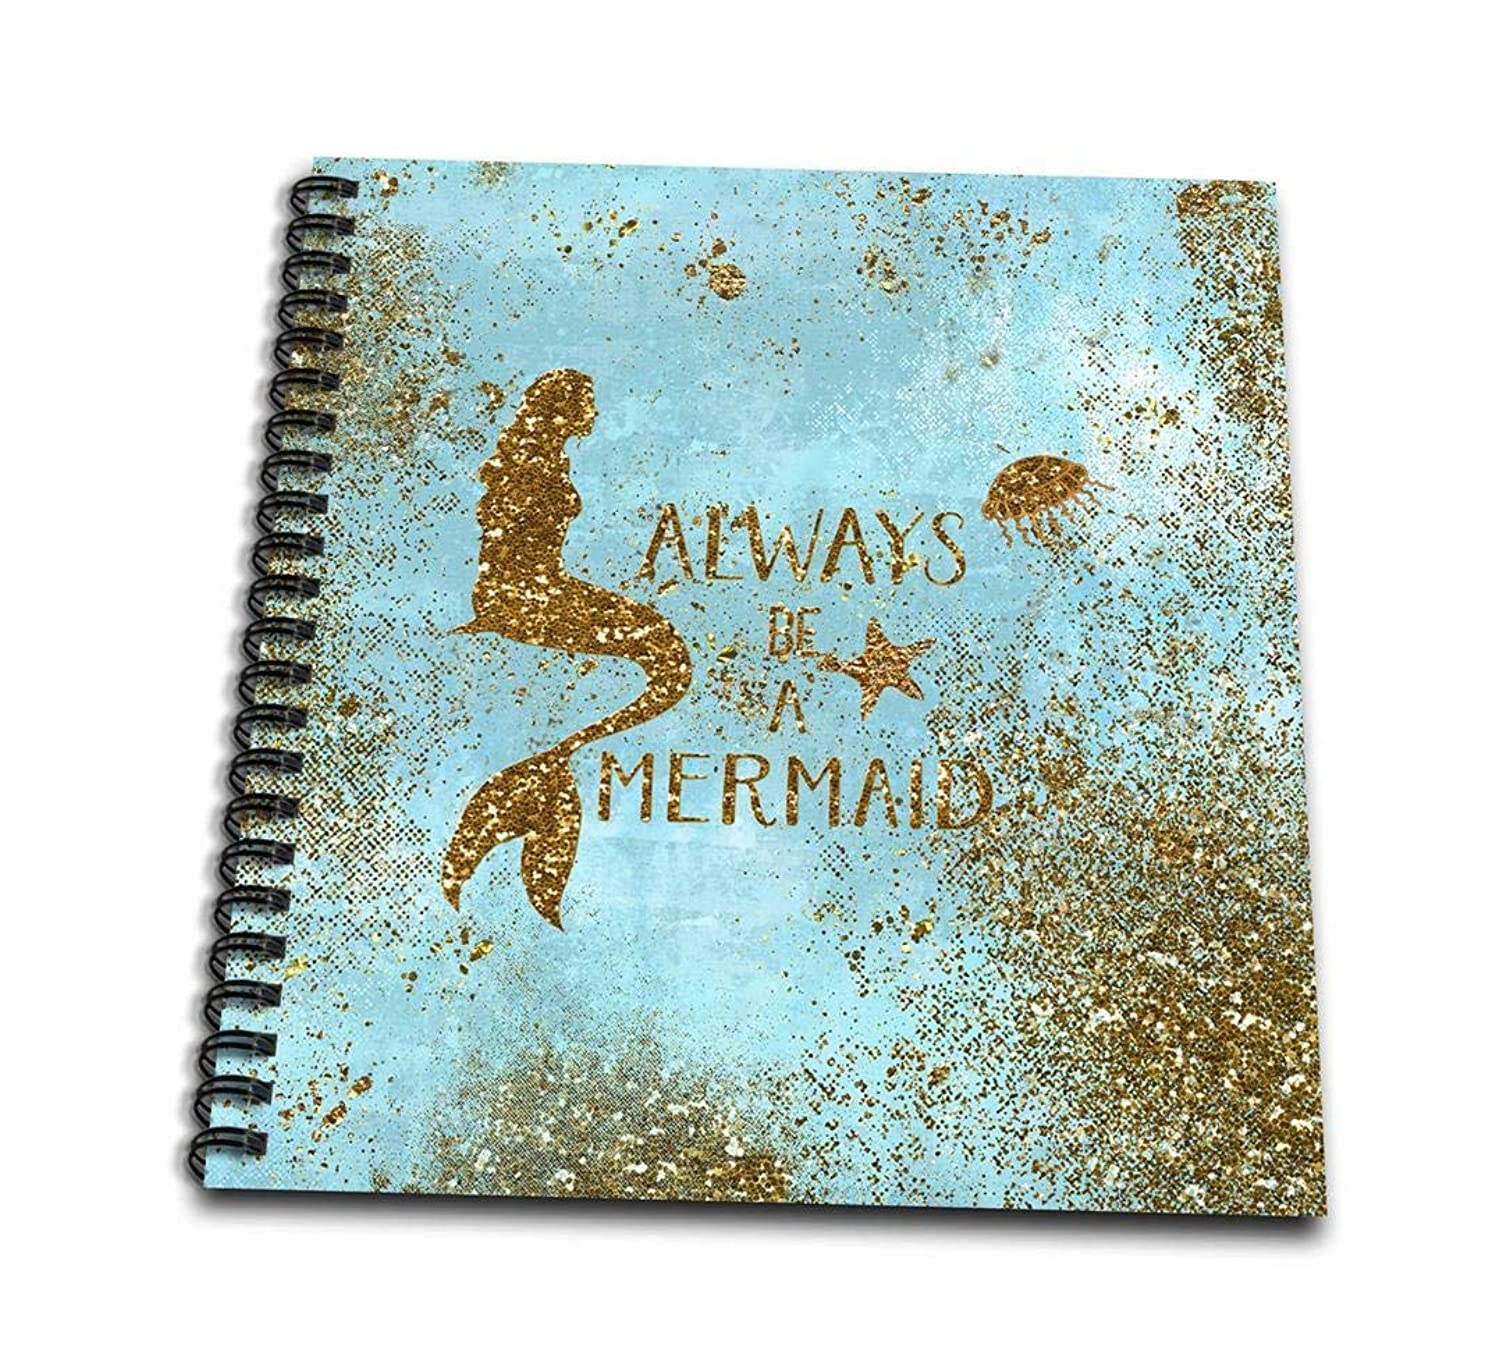 3dRose db_266916_3 Gold Glittery Mermaid Quote On Sparkling Teal Mini Notepad, 4 x 4